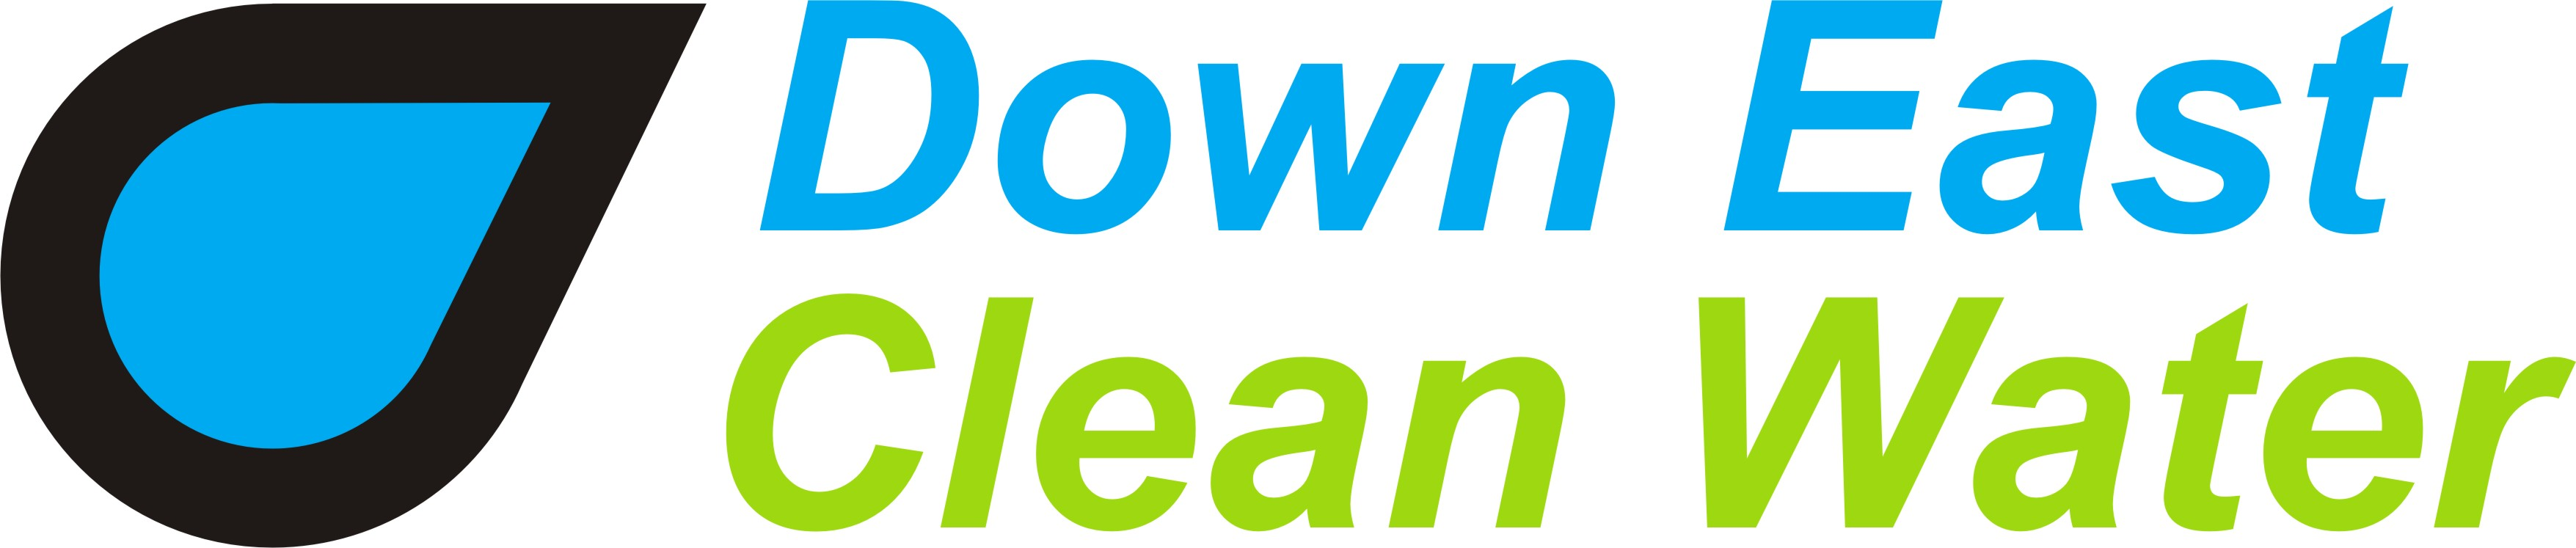 Down East Clean Water Maritime Water Treatment Solutions